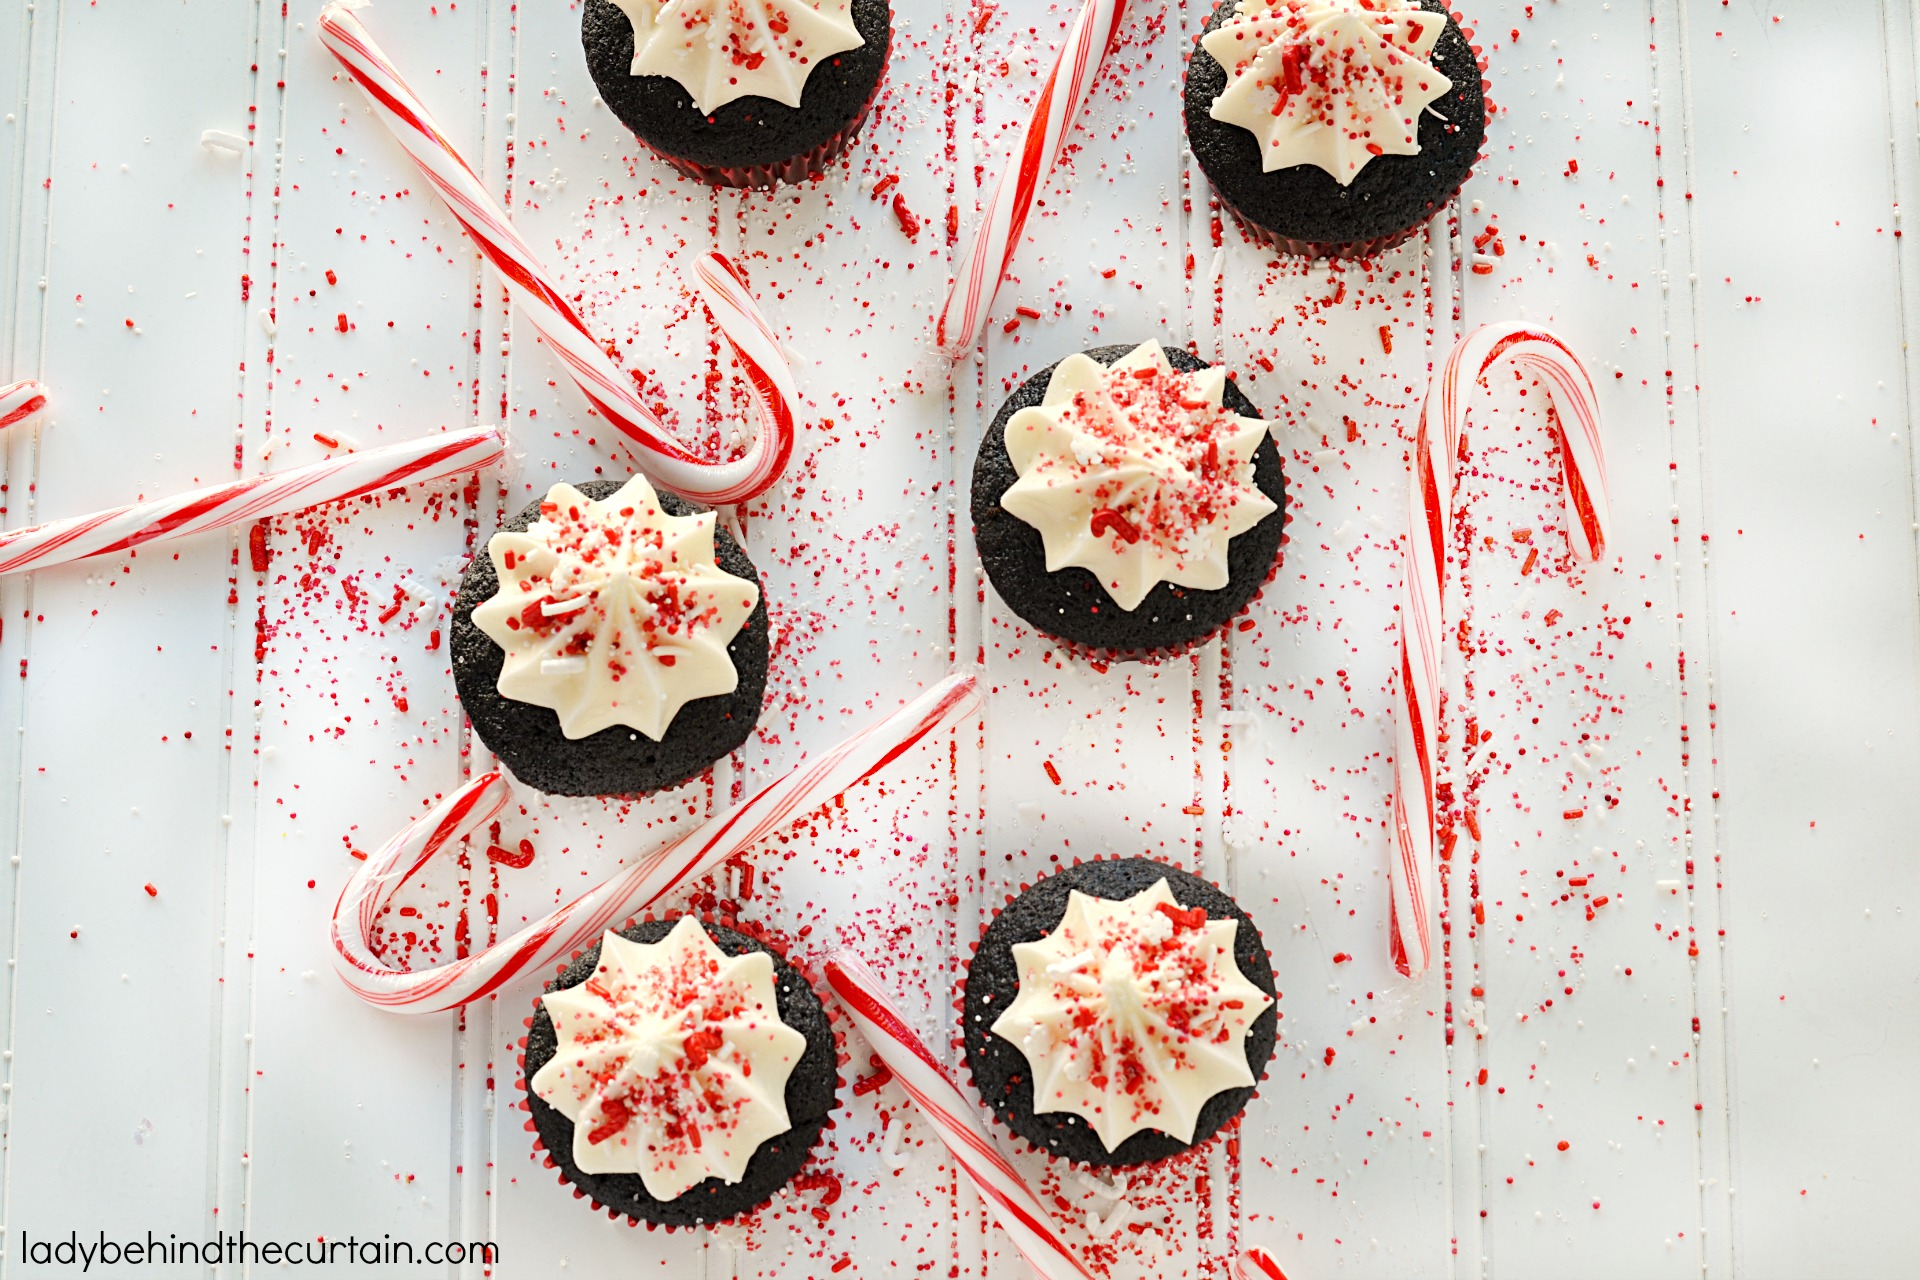 Peppermint Marshmallow Filled Chocolate Cupcakes